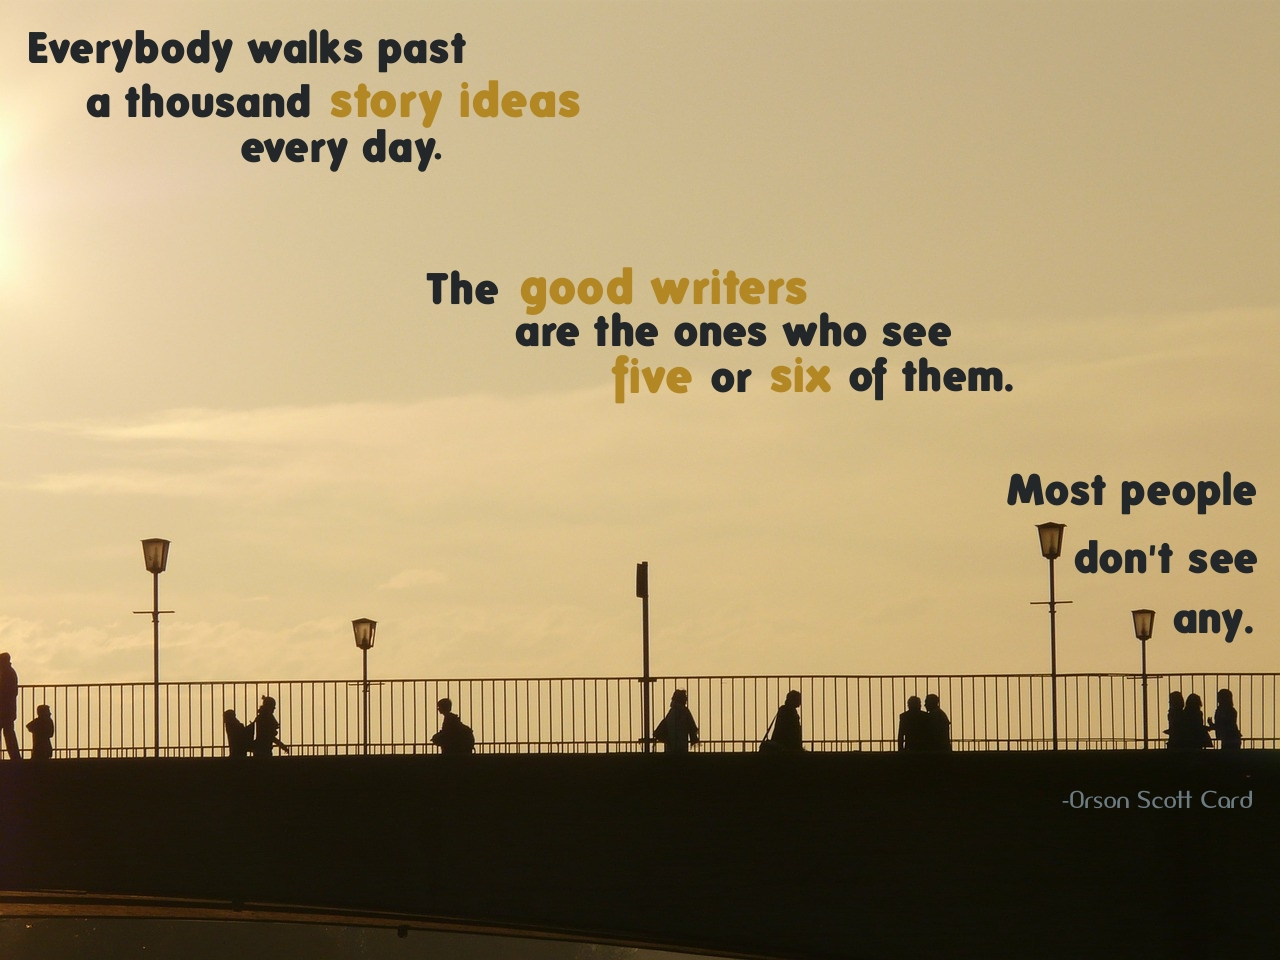 Life Quotes By Authors Walking Past A Story  Quote 24 « Mark Anthony Books